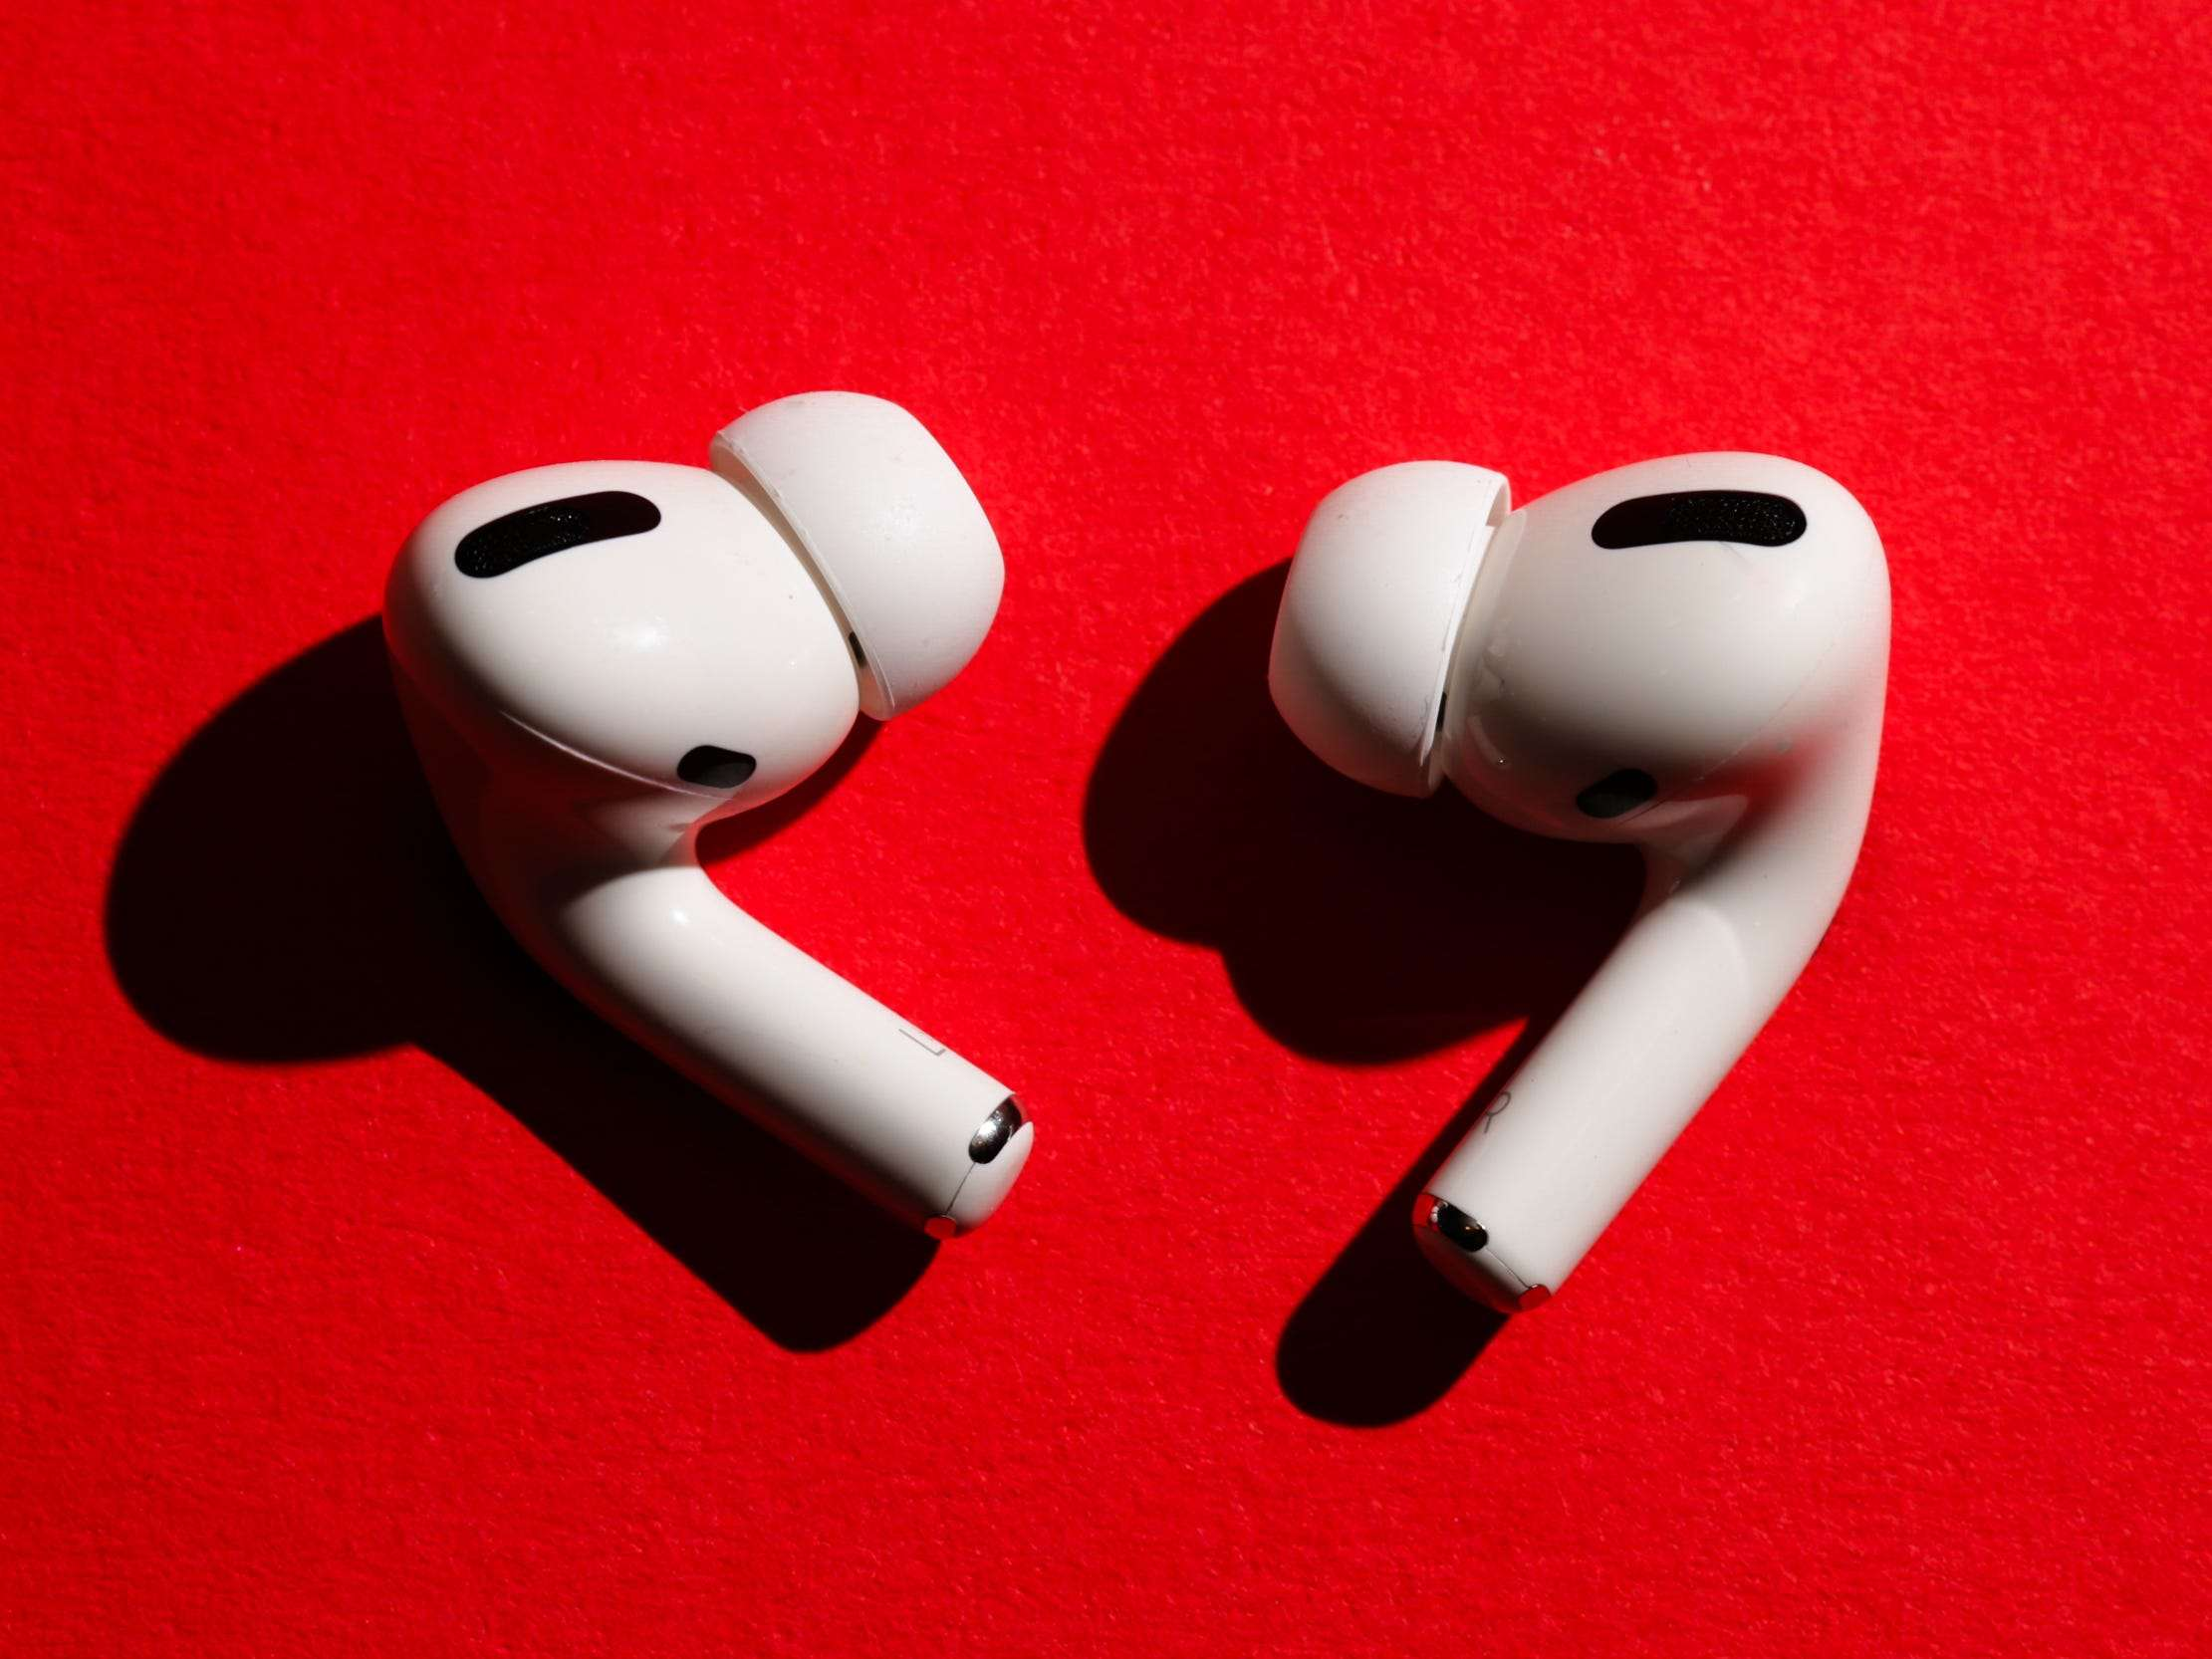 Apple Airpods 3 Release Rumored For 2021 Same Design As Airpods